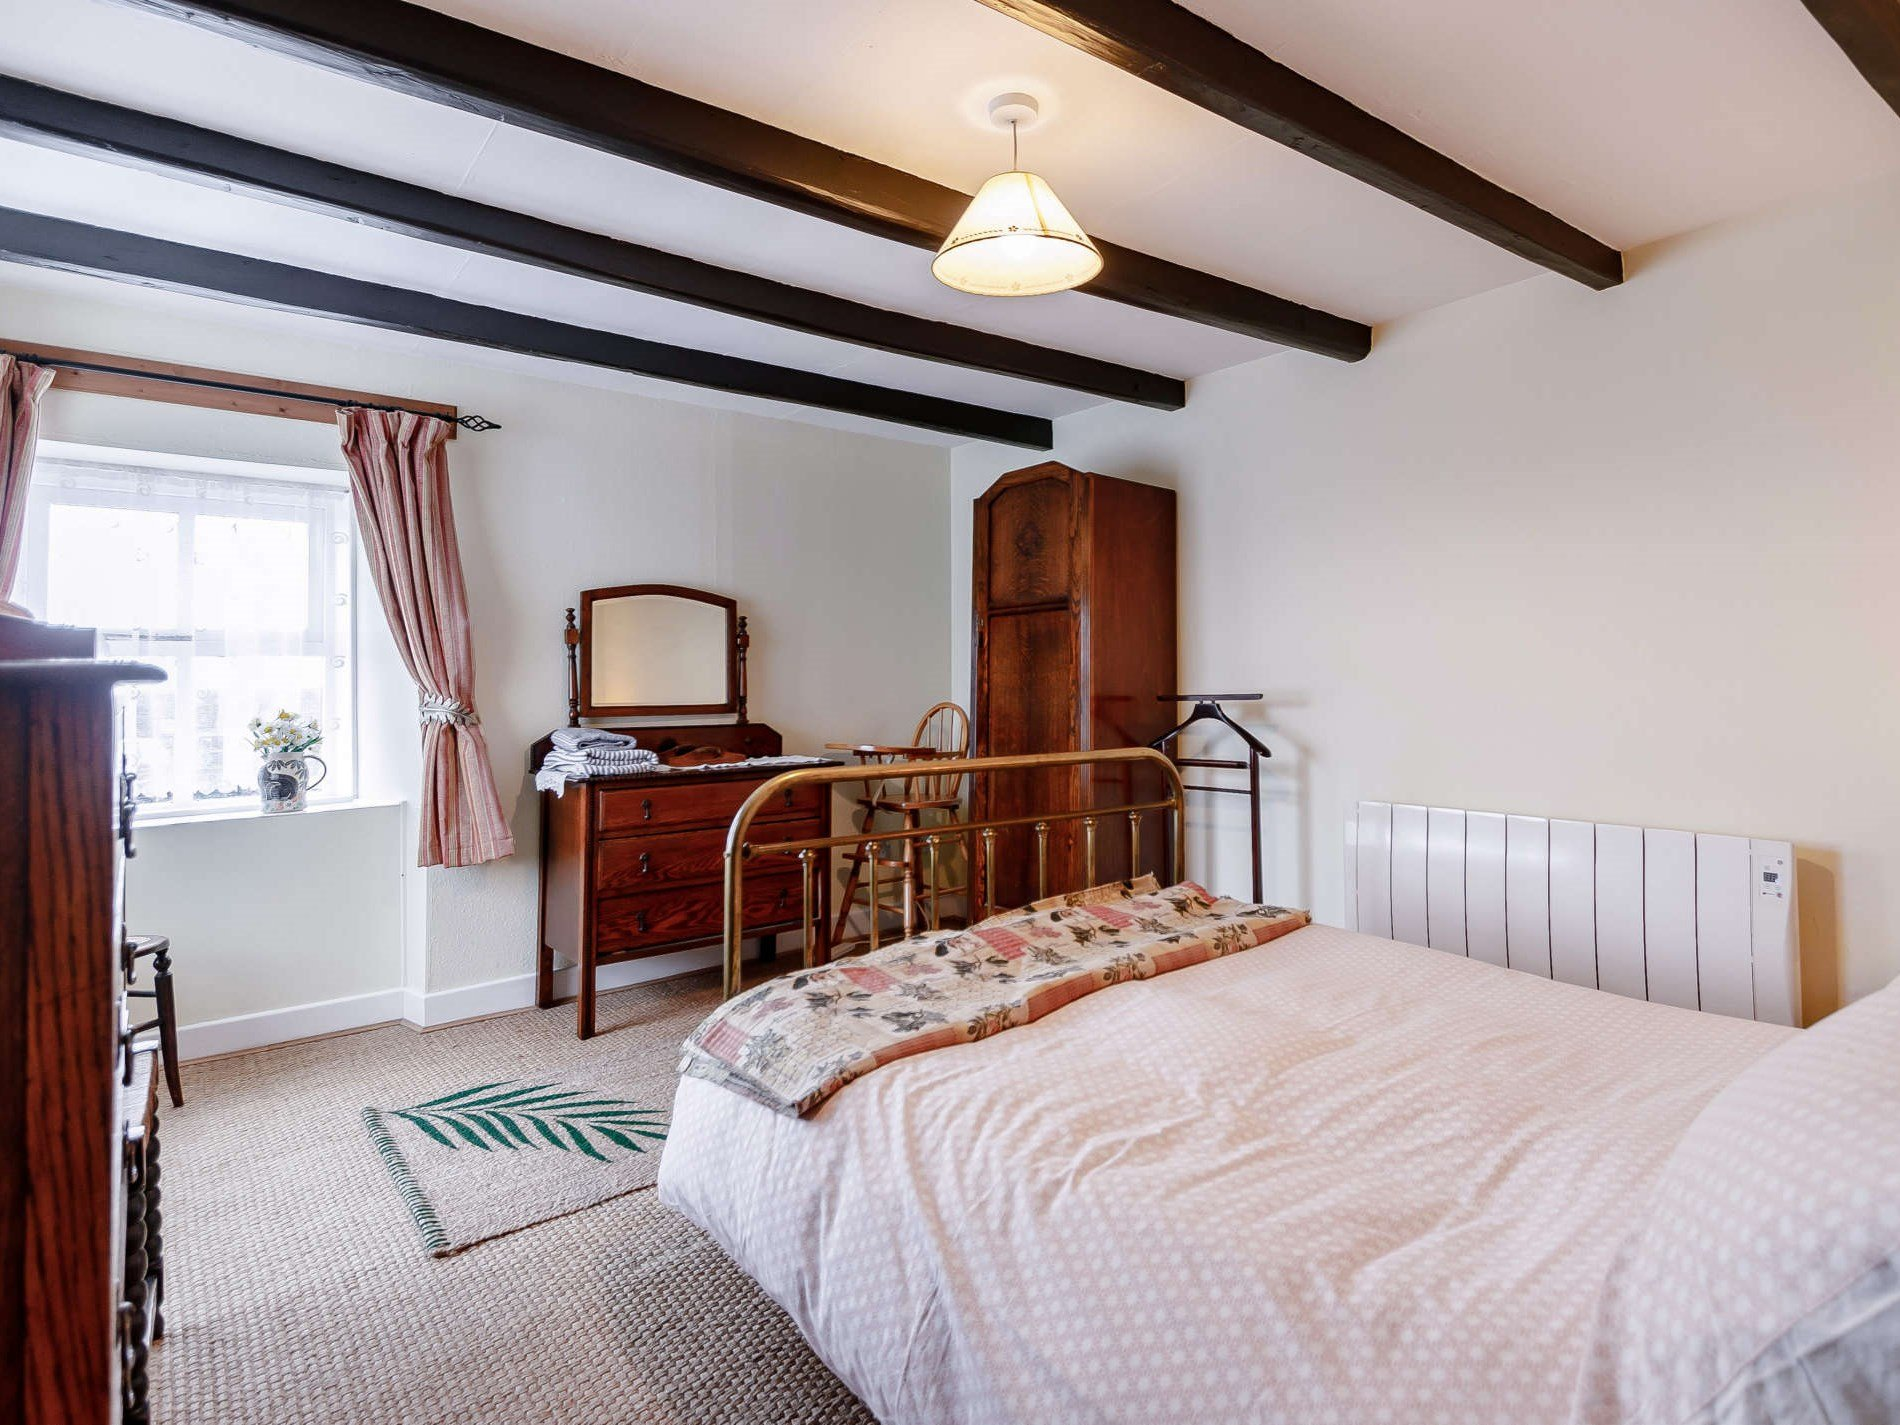 2 Bedroom Cottage in Angus, Perthshire, Angus and Fife